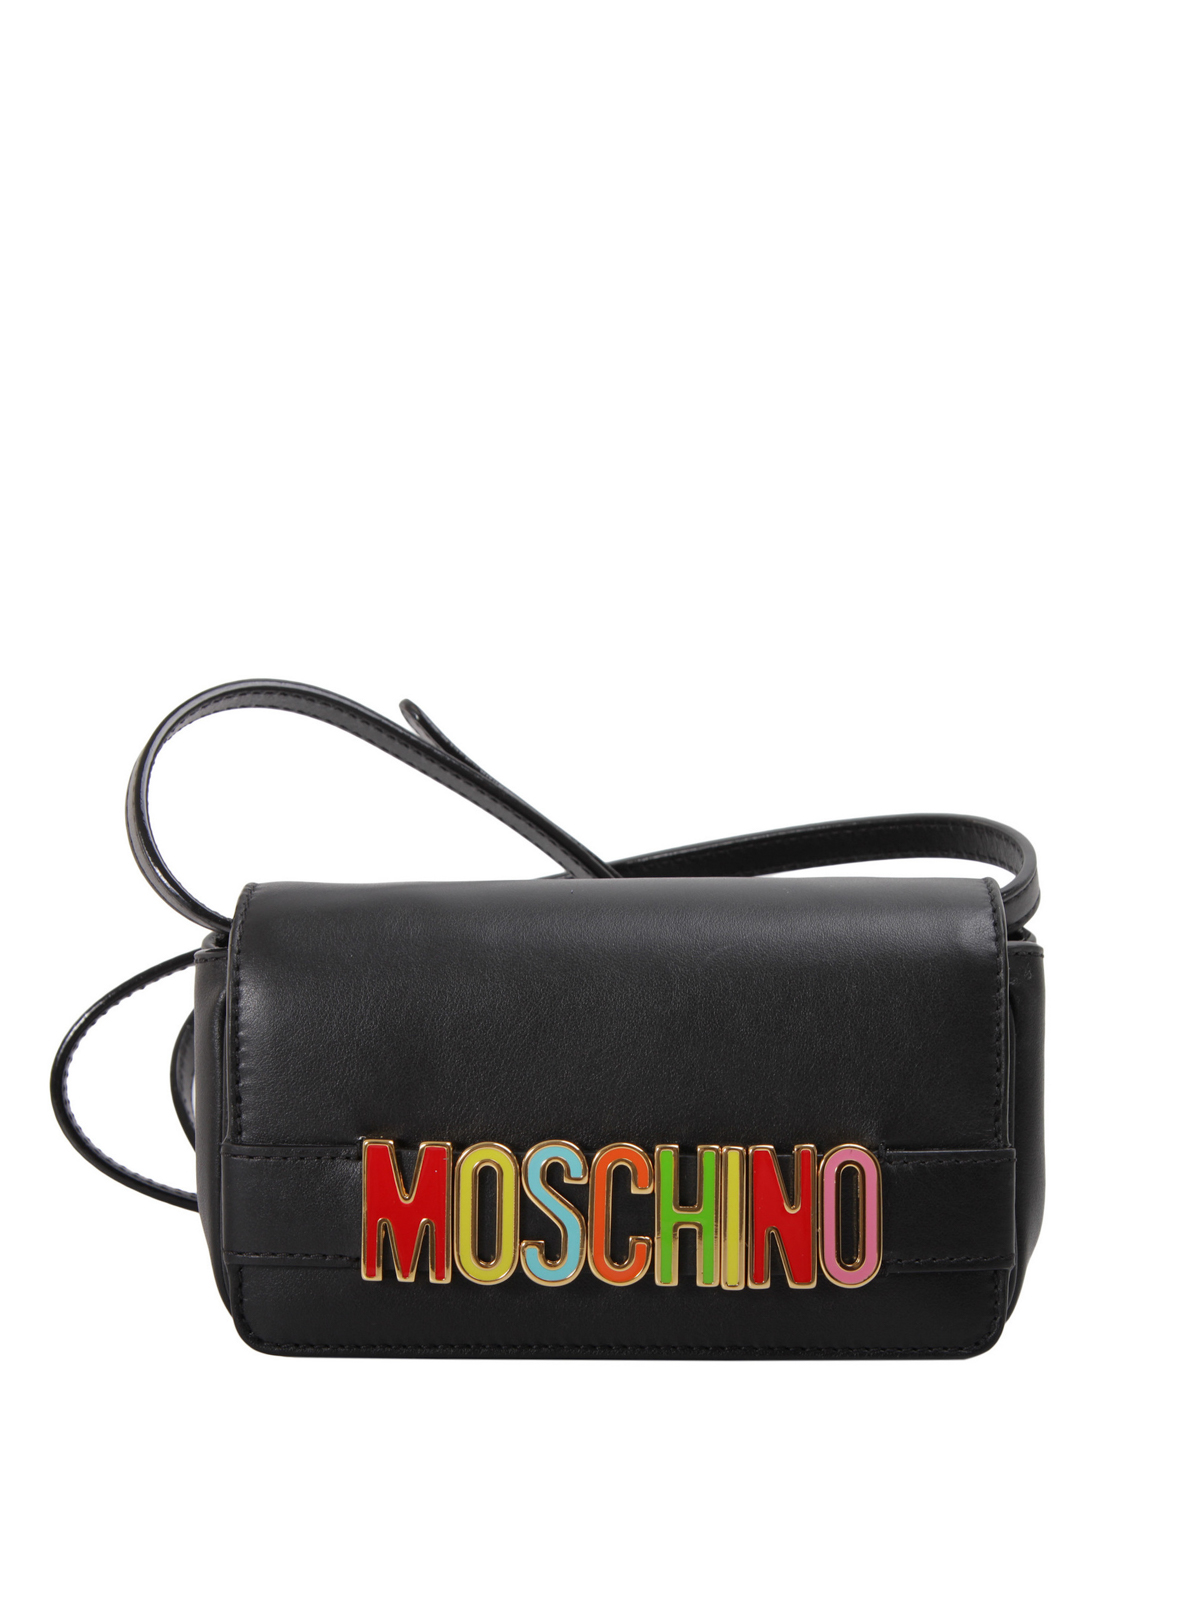 Moschino Coloured logo leather crossbody